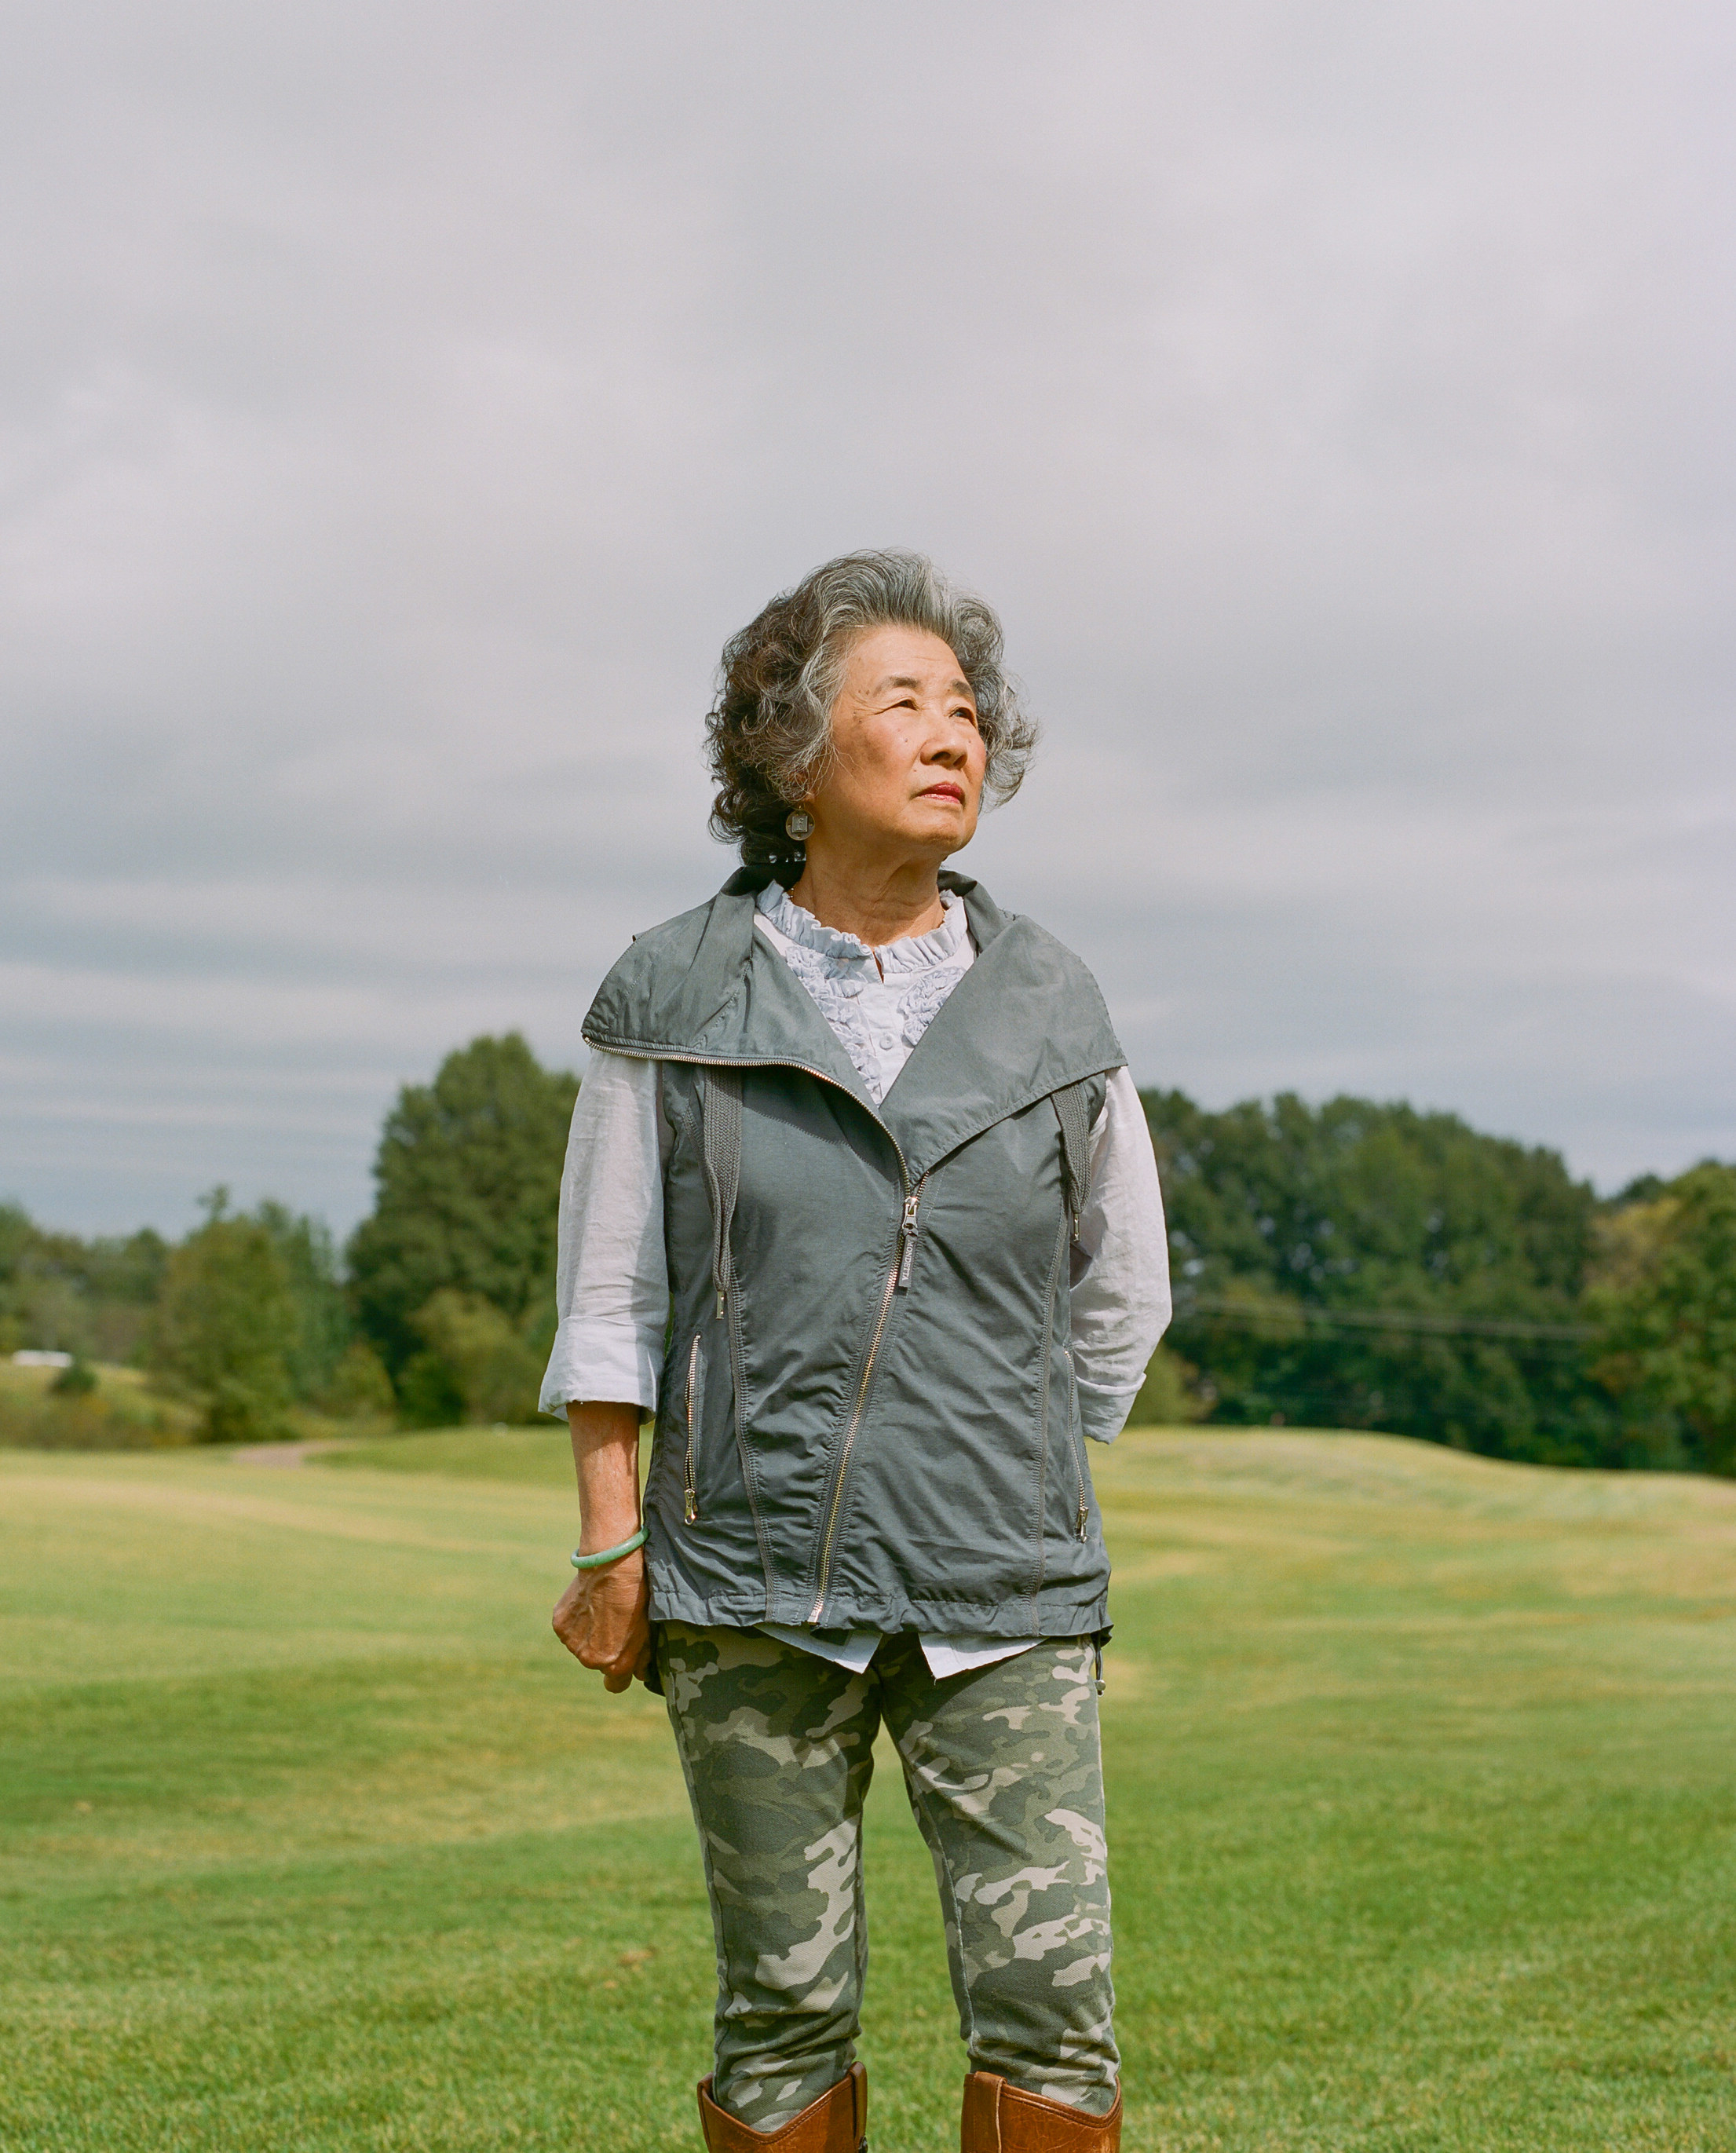 An older woman stands in a field wearing camo pants